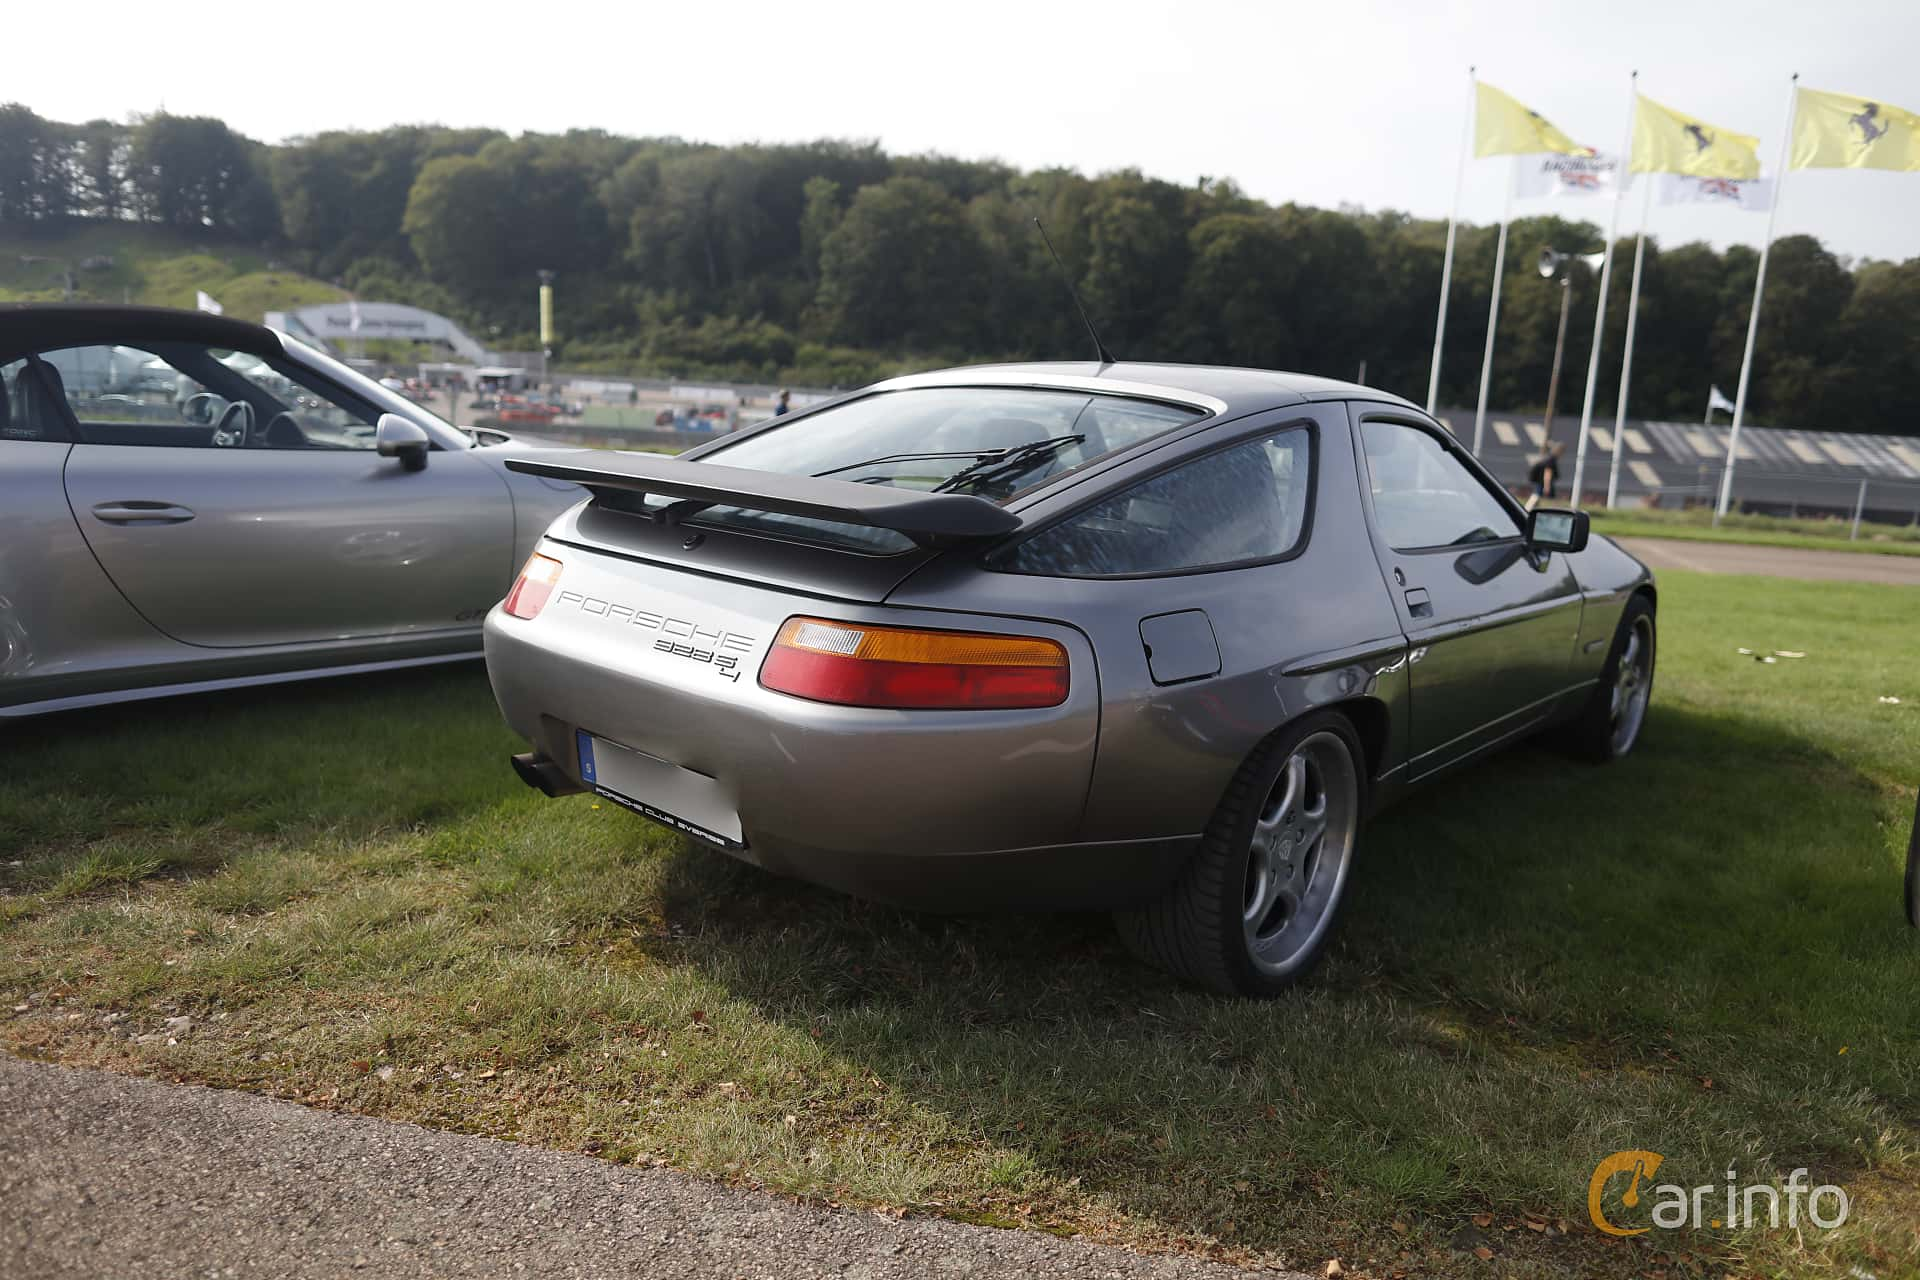 Porsche 928 S4  Automatic, 320hp, 1990 at Autoropa Racing day Knutstorp 2019